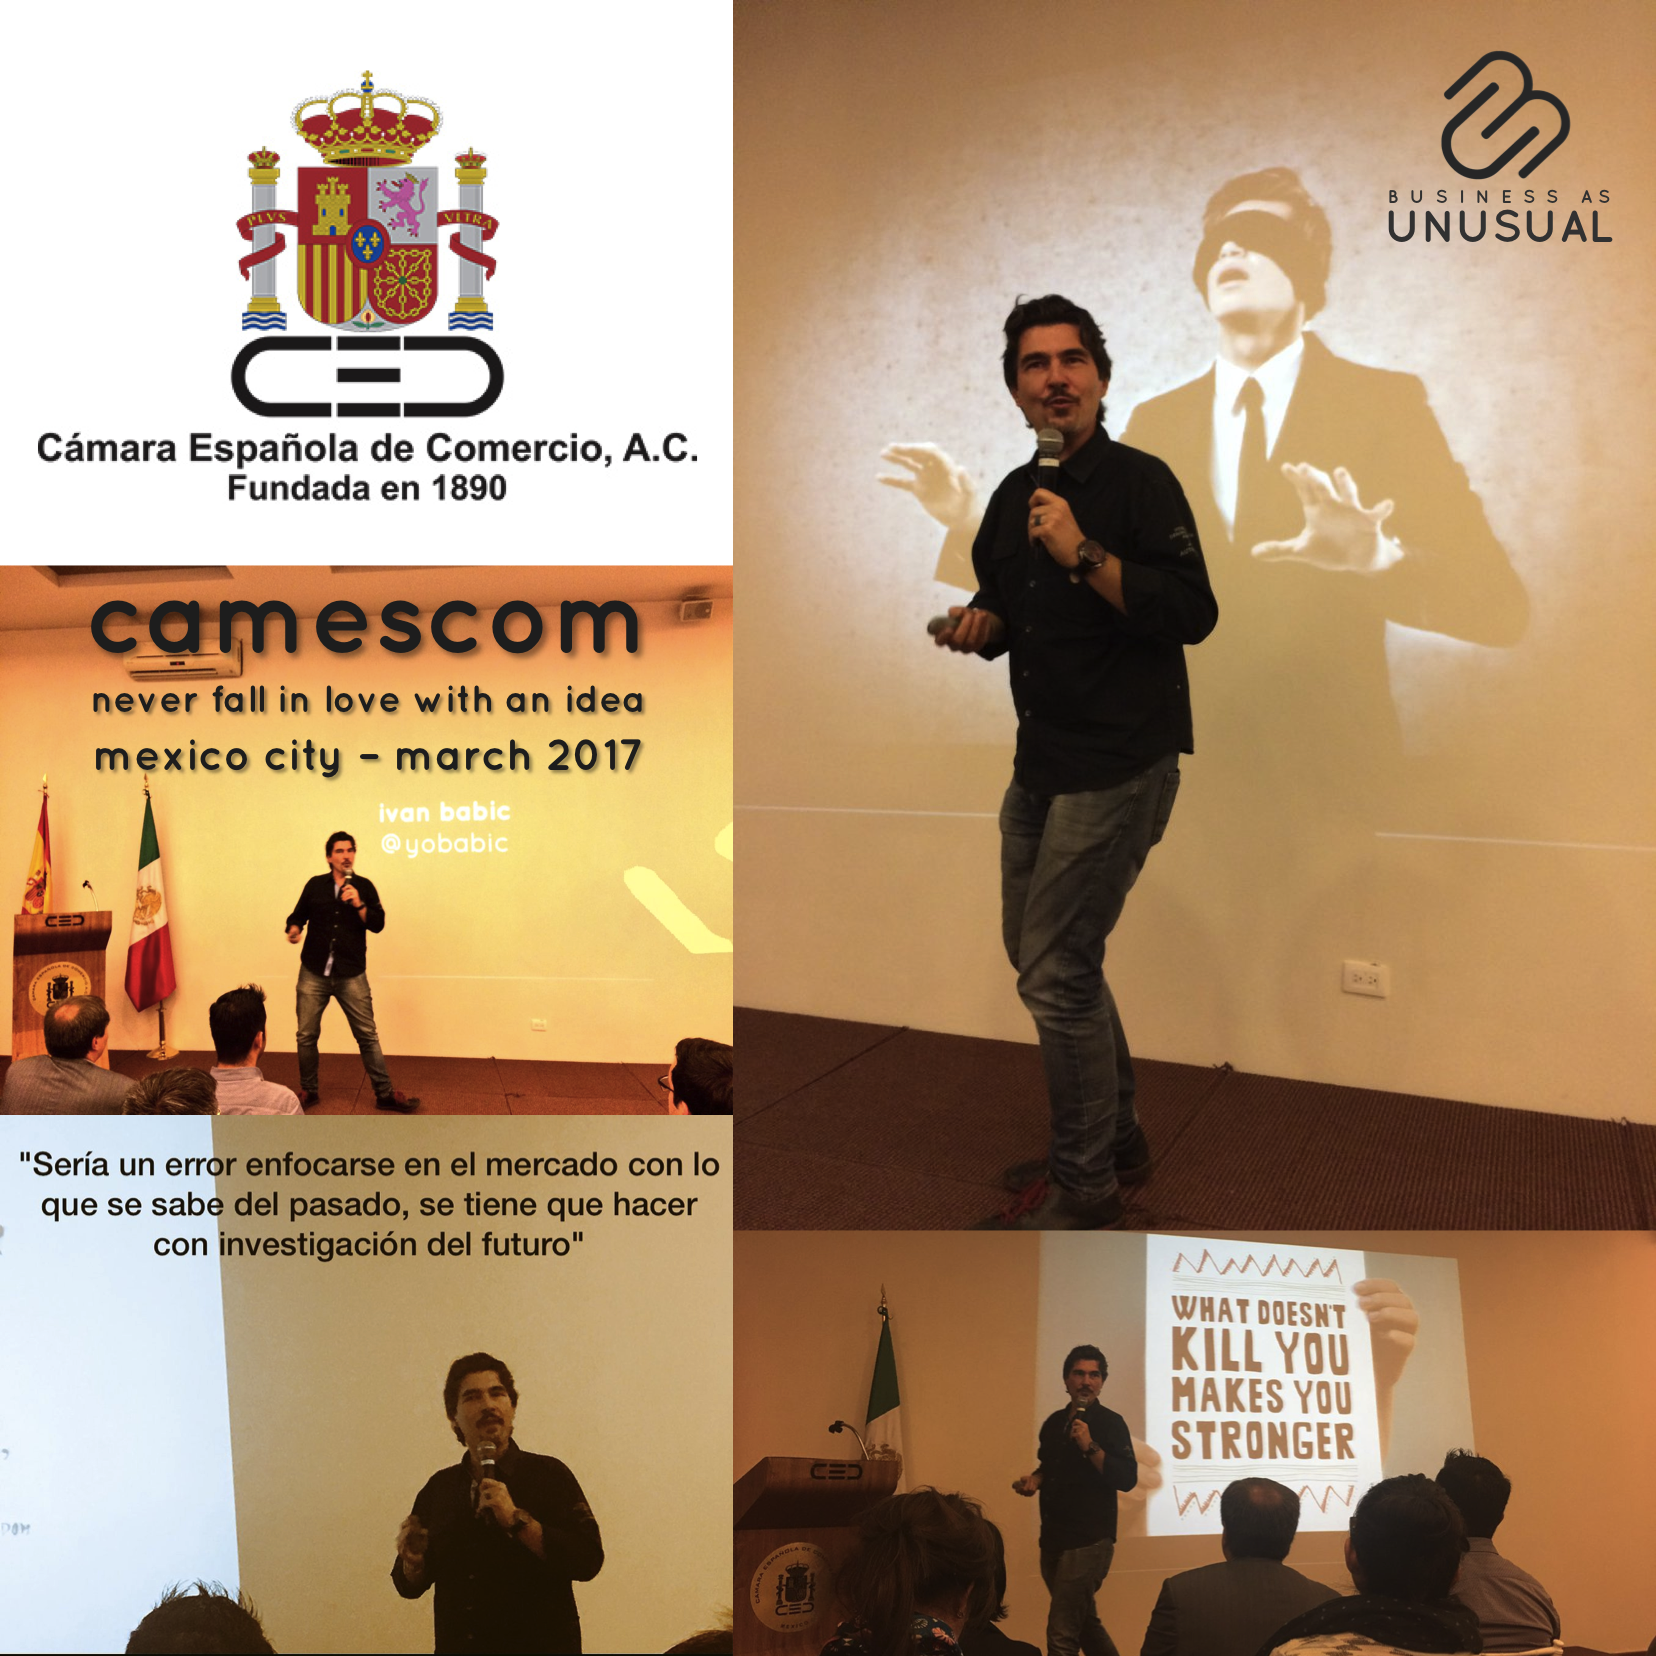 CAMESCOM - Never fall in love with an idea